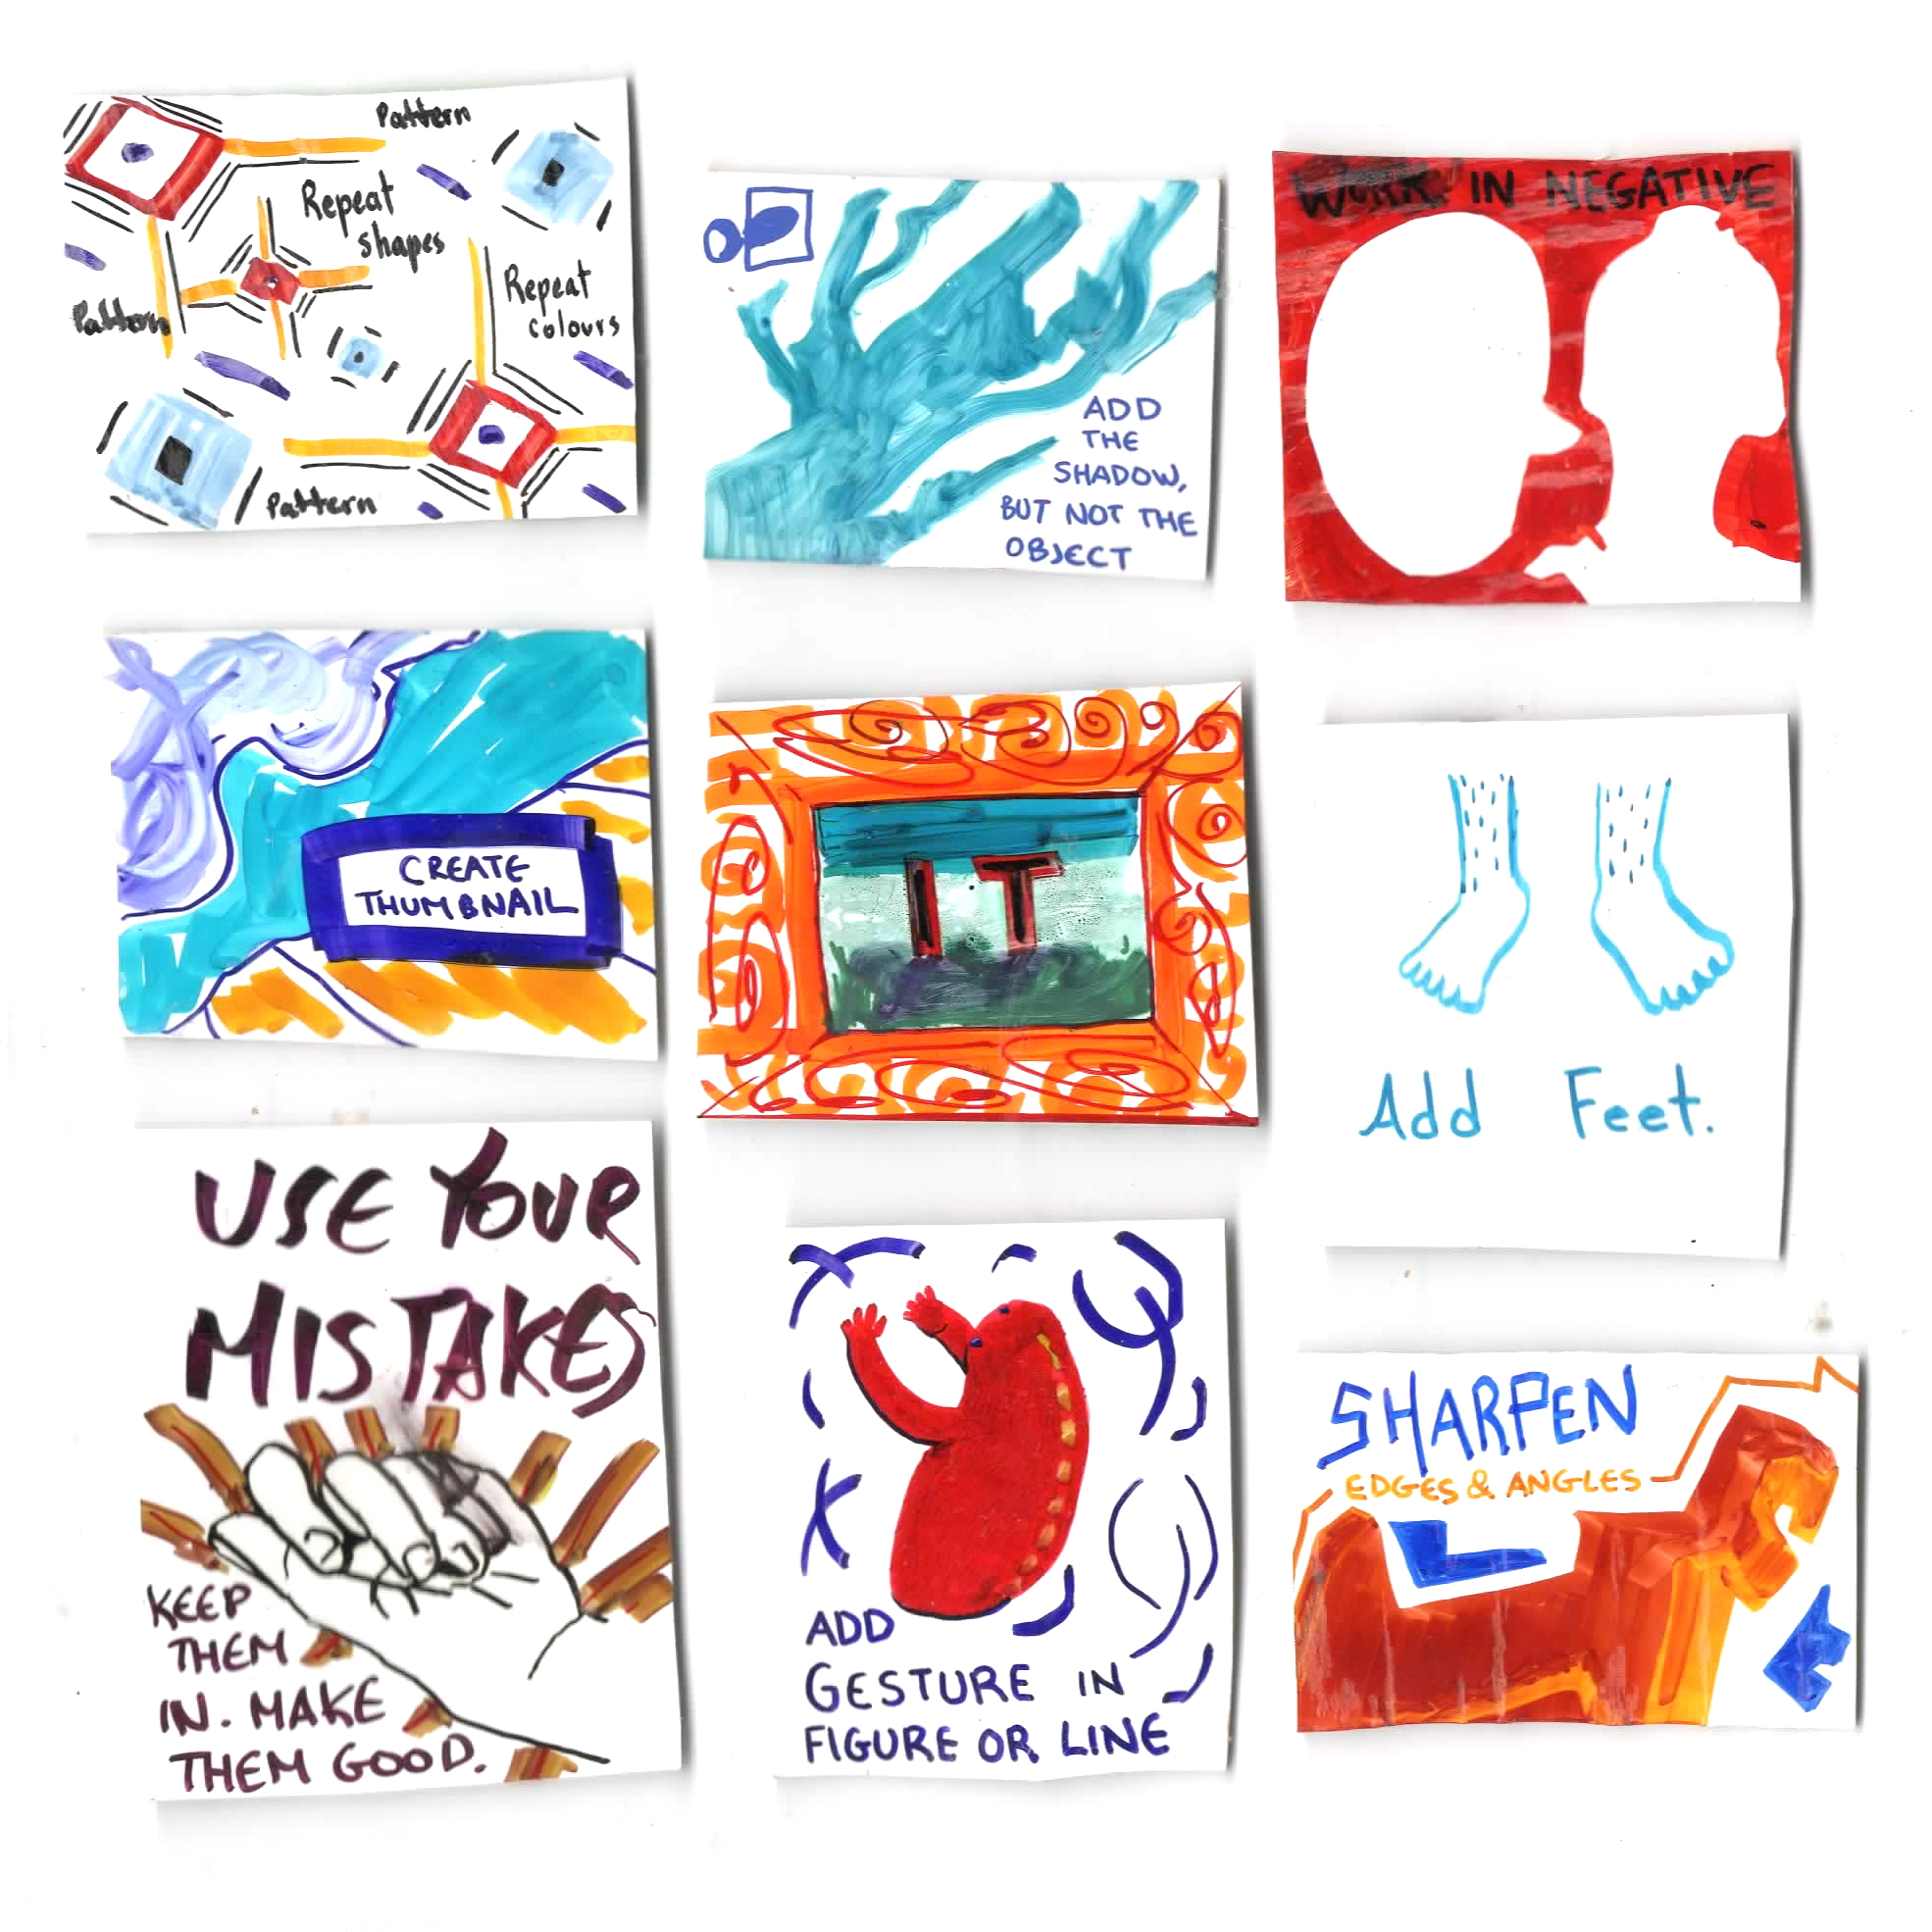 repeat shapes, add the shadow, work in negative, create thumbnails, frame it, add feet, use your mistakes, add gesture, sharpen edges, LittleNEO, oblique strategies